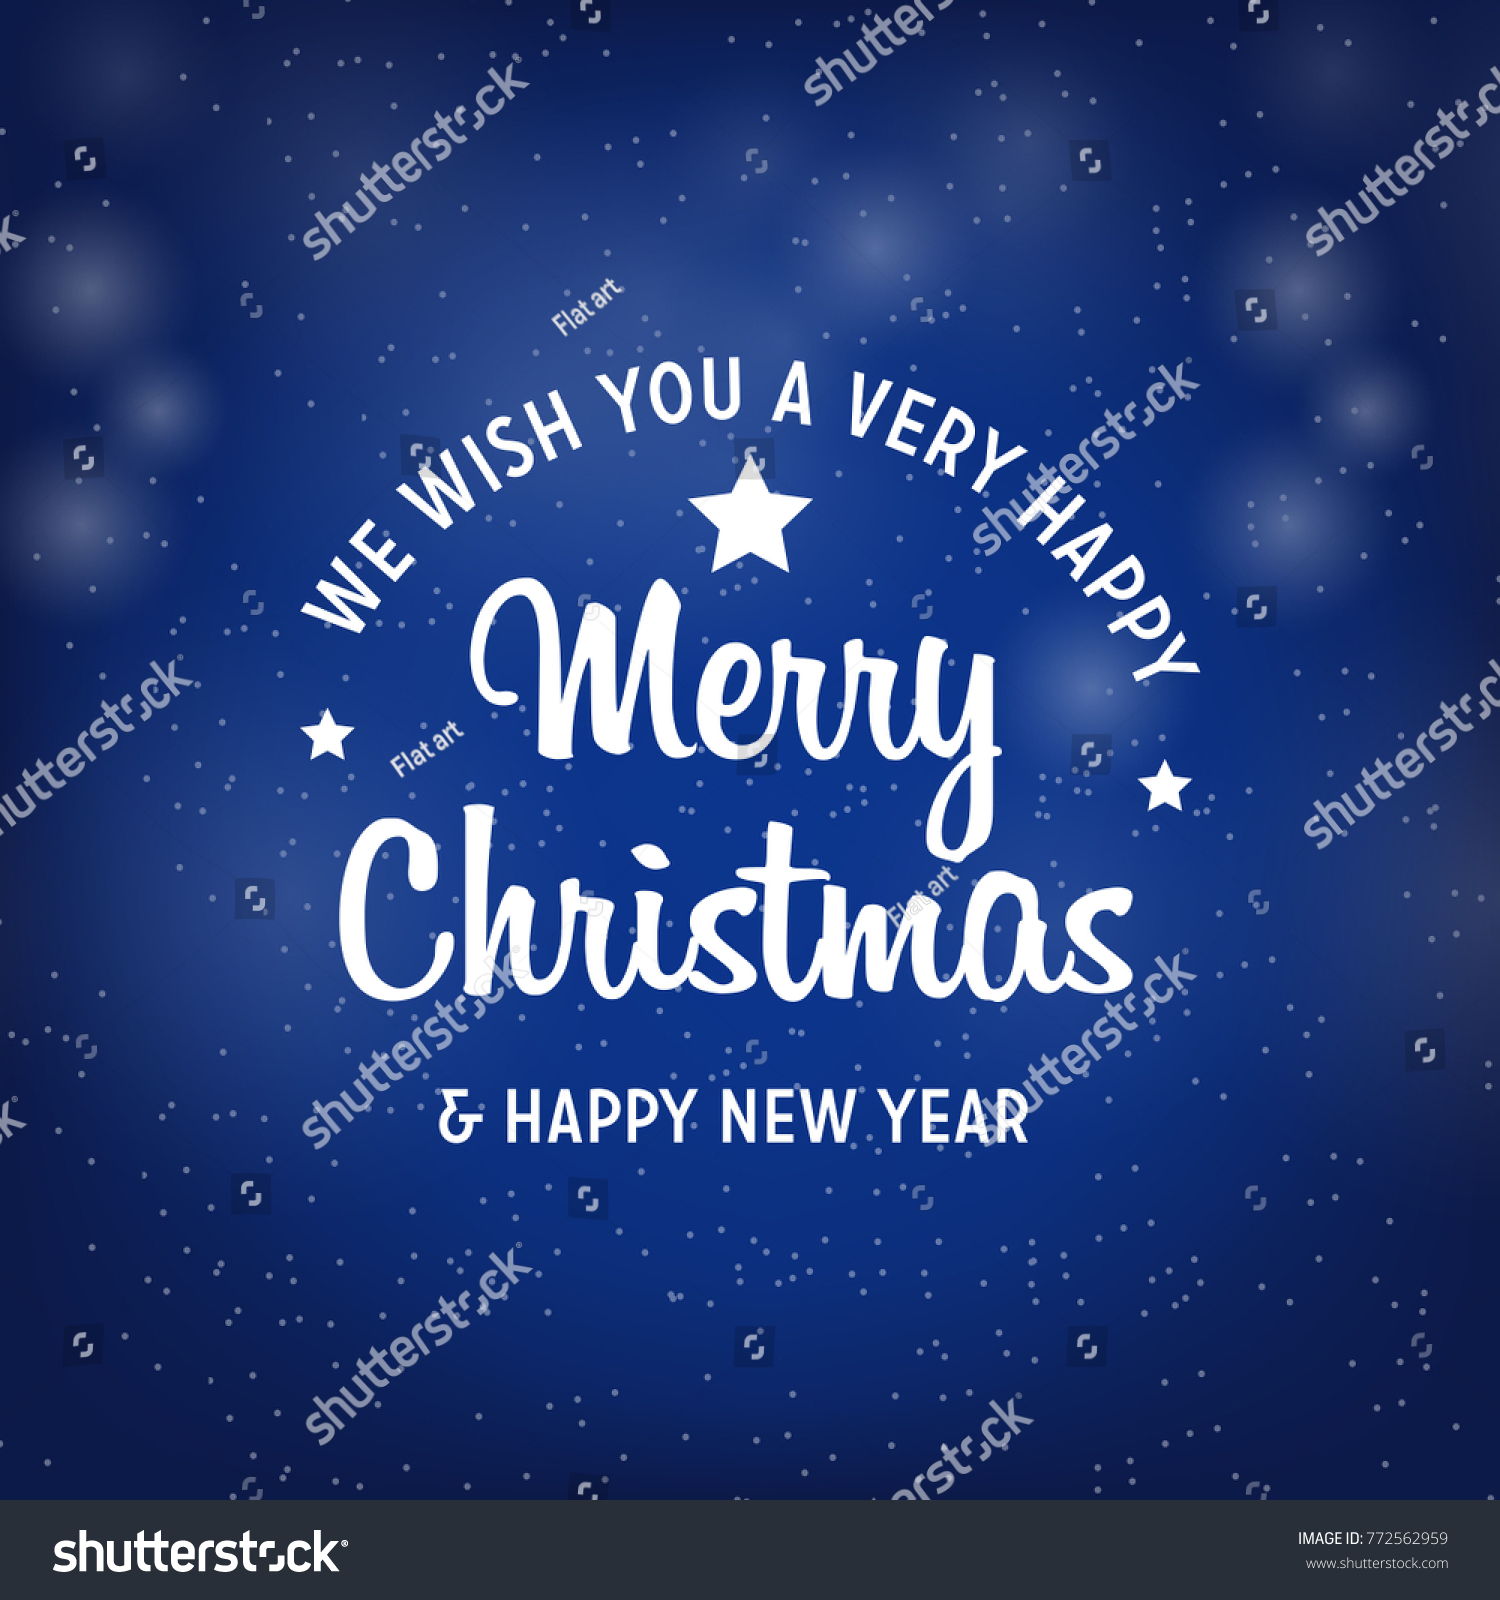 Christmas Happy Newyear Greeting Card Christmas Stock Photo Photo